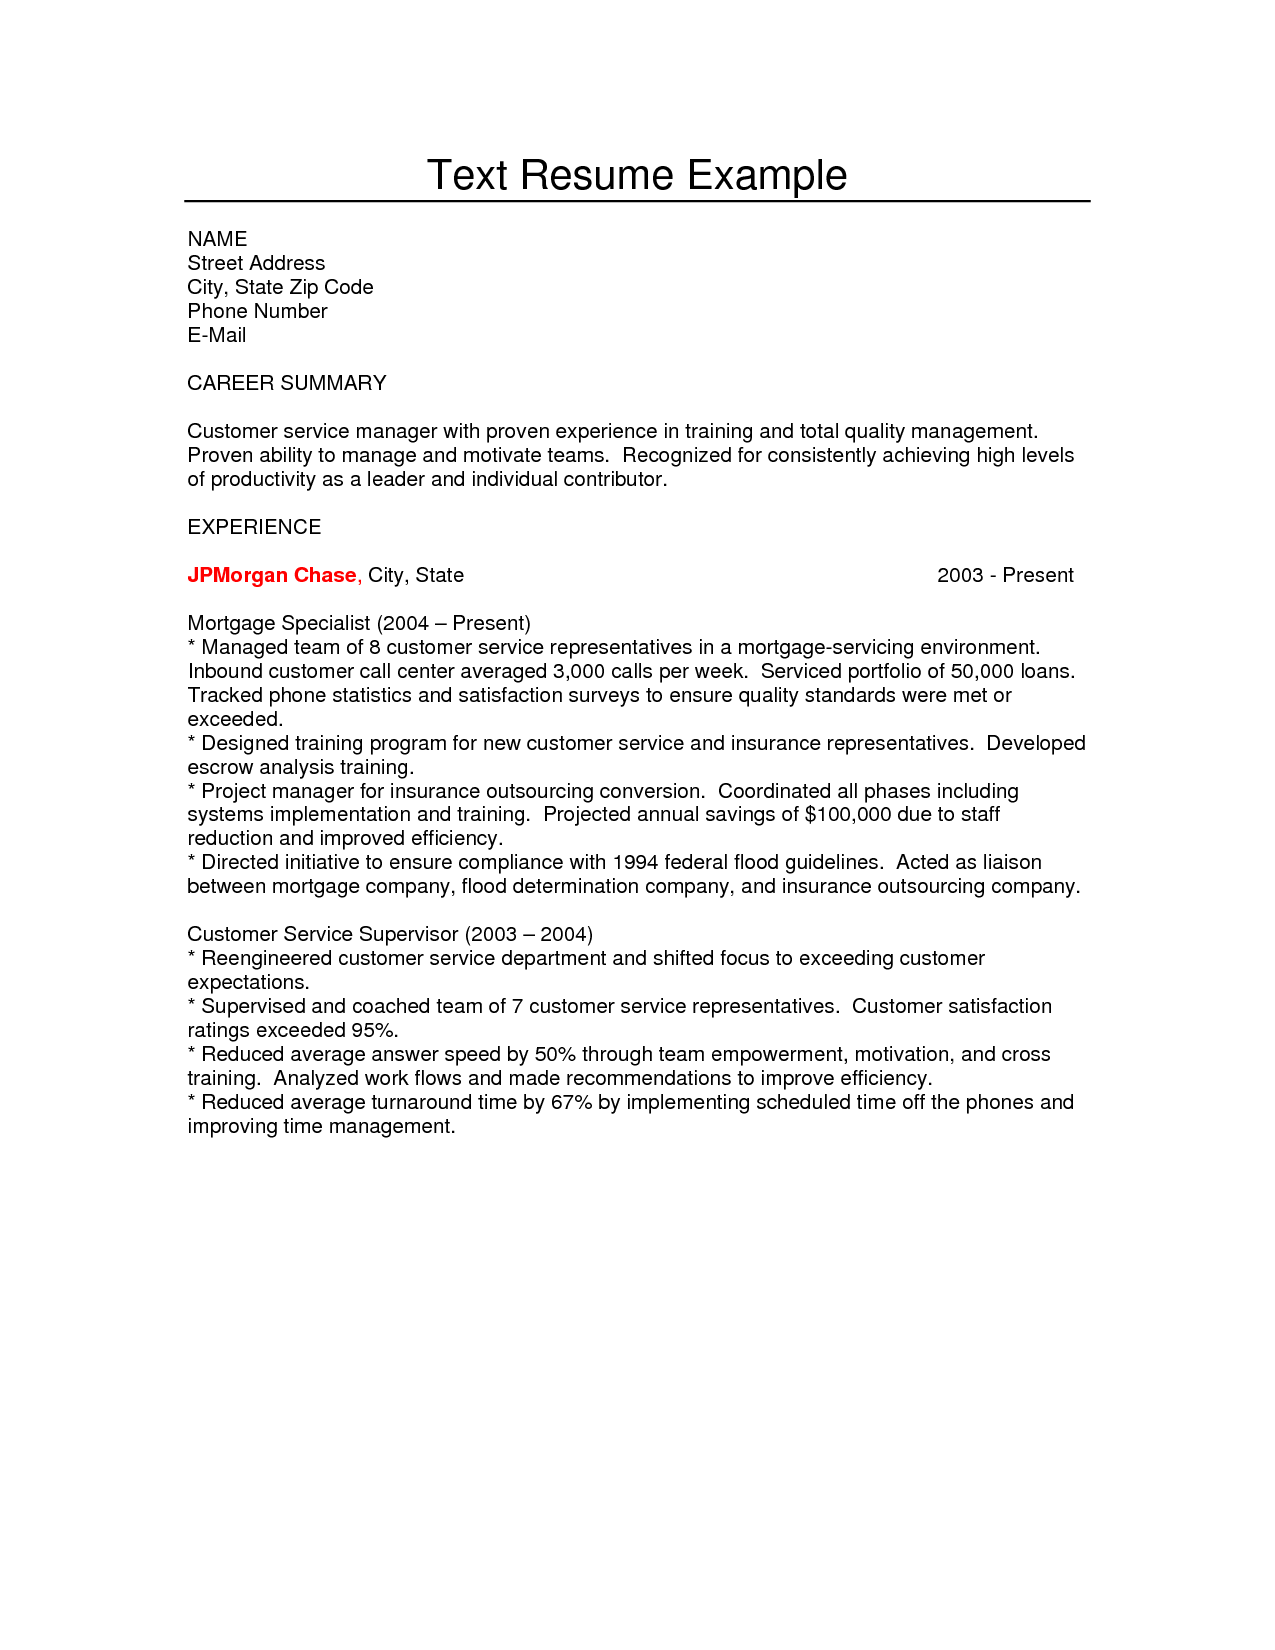 Superior Plain Text Resume Format For Plain Text Resume